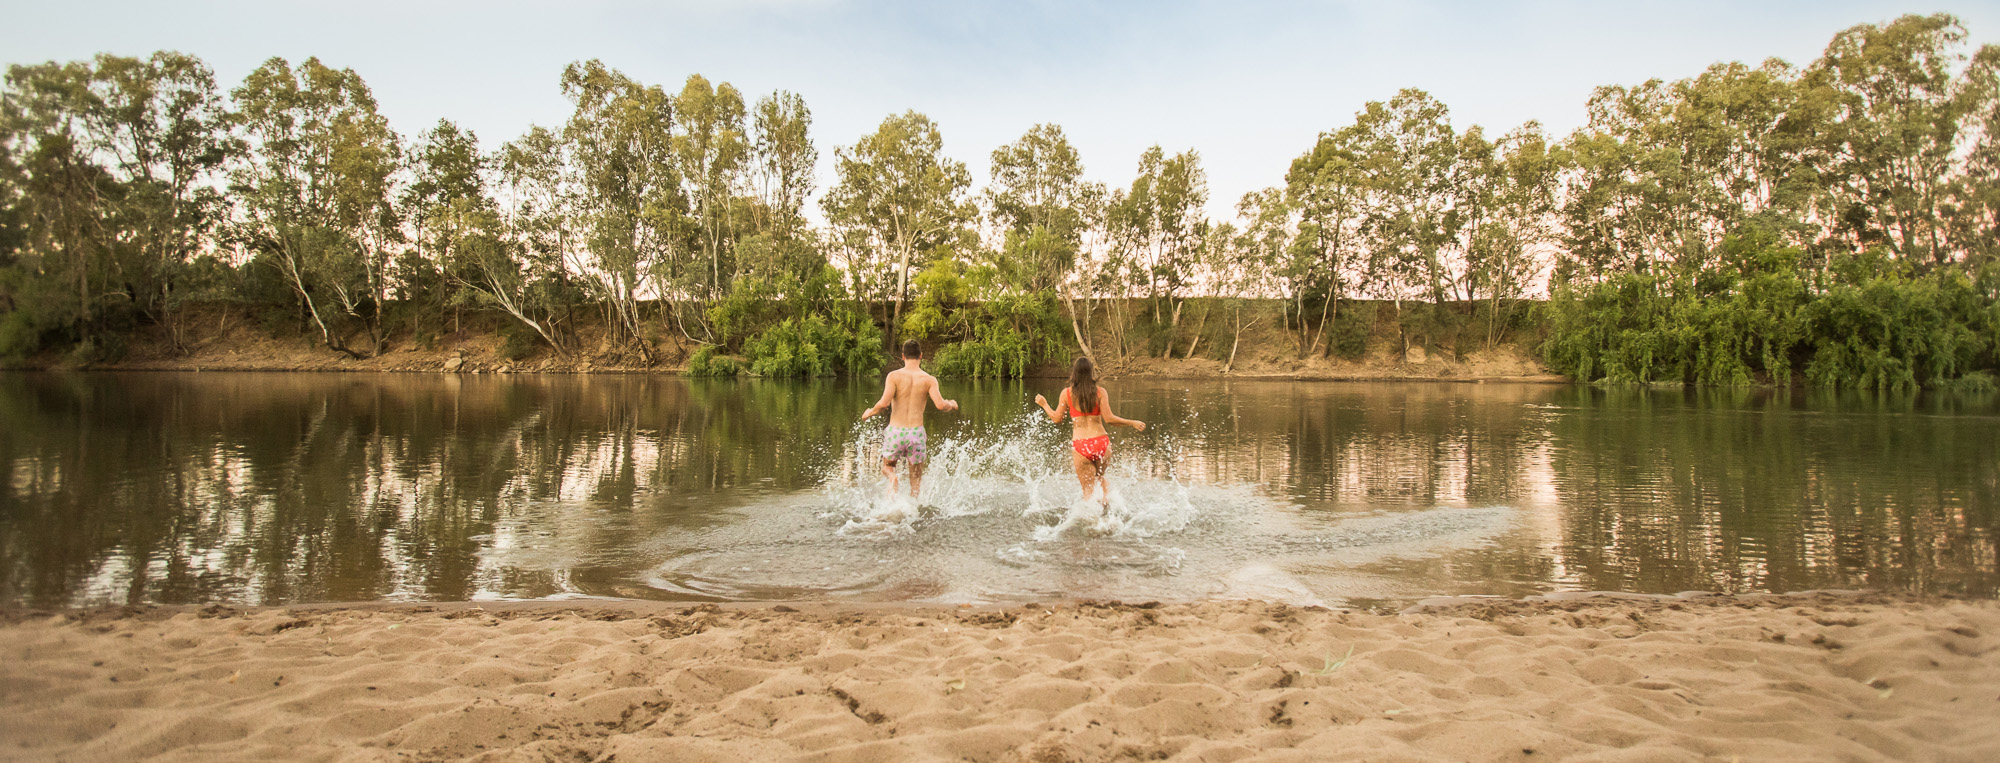 Boy and girl running into the water at Riverside: Wagga Beach